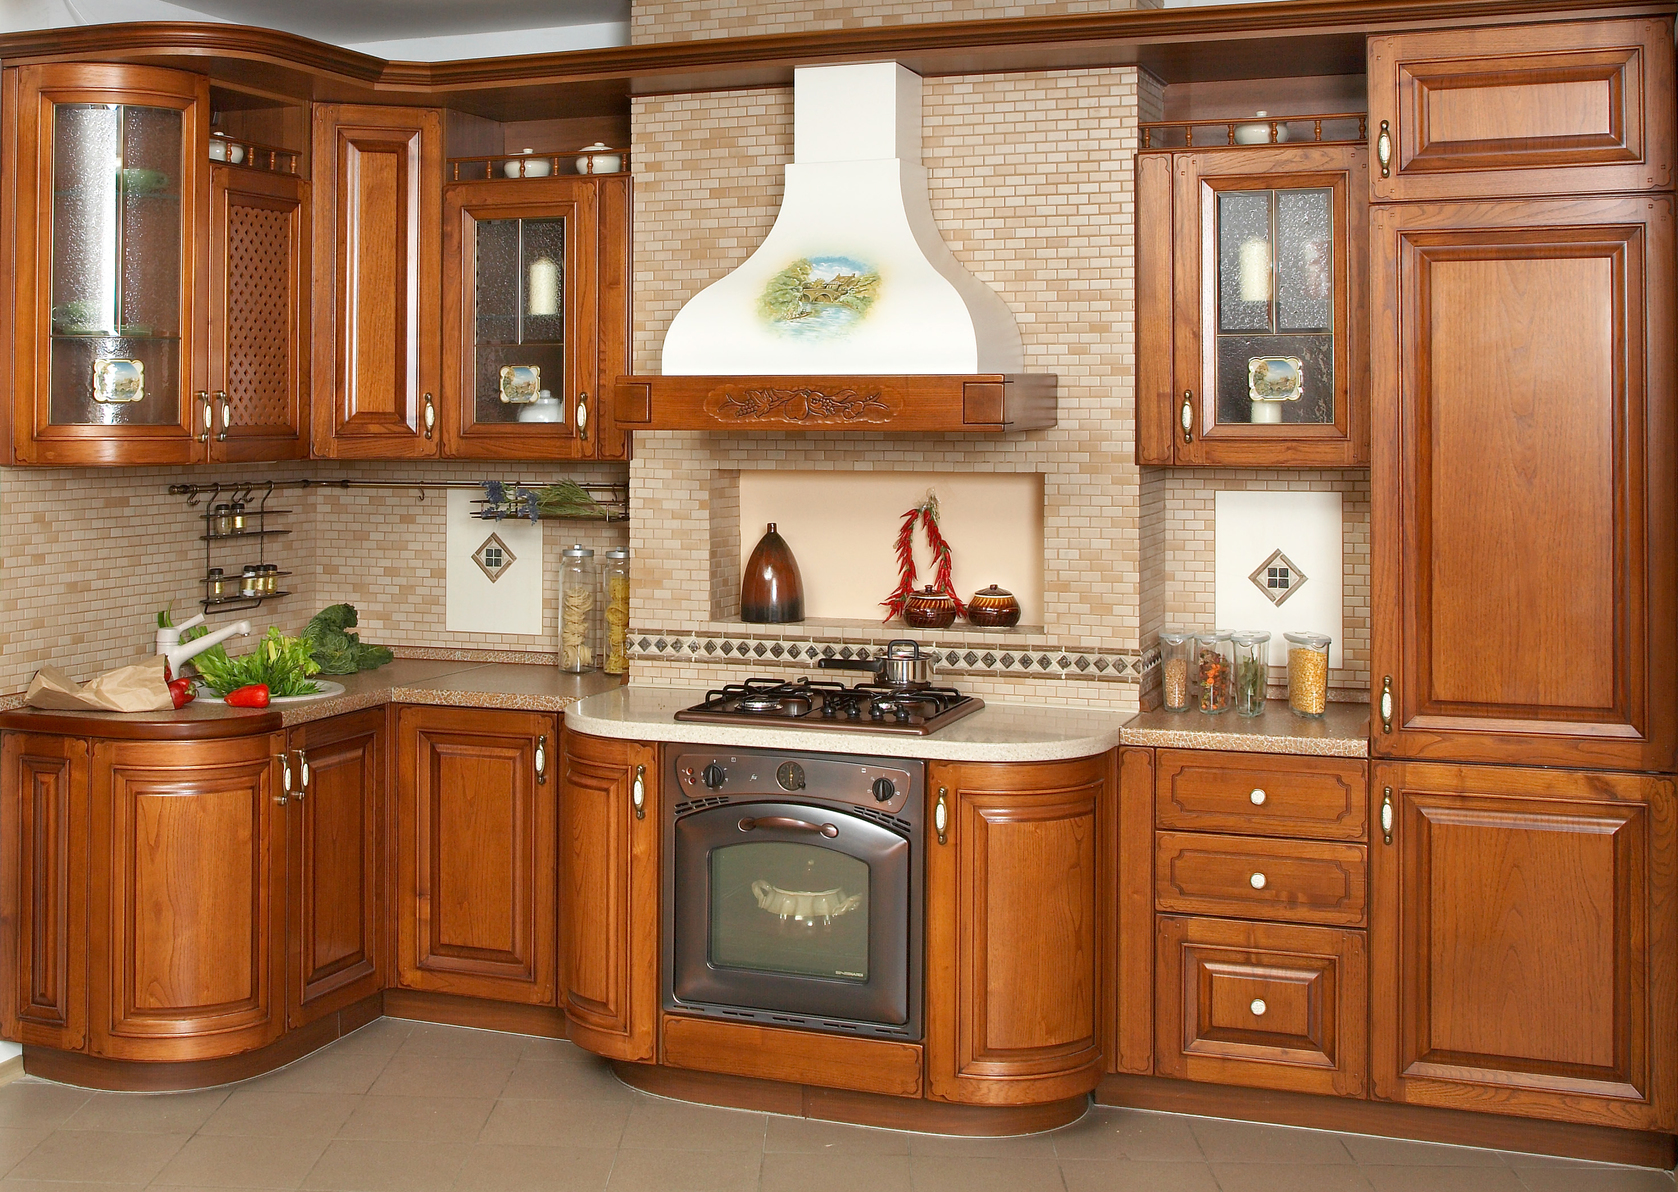 013416195 modern luxury kitchen and dini.jpg